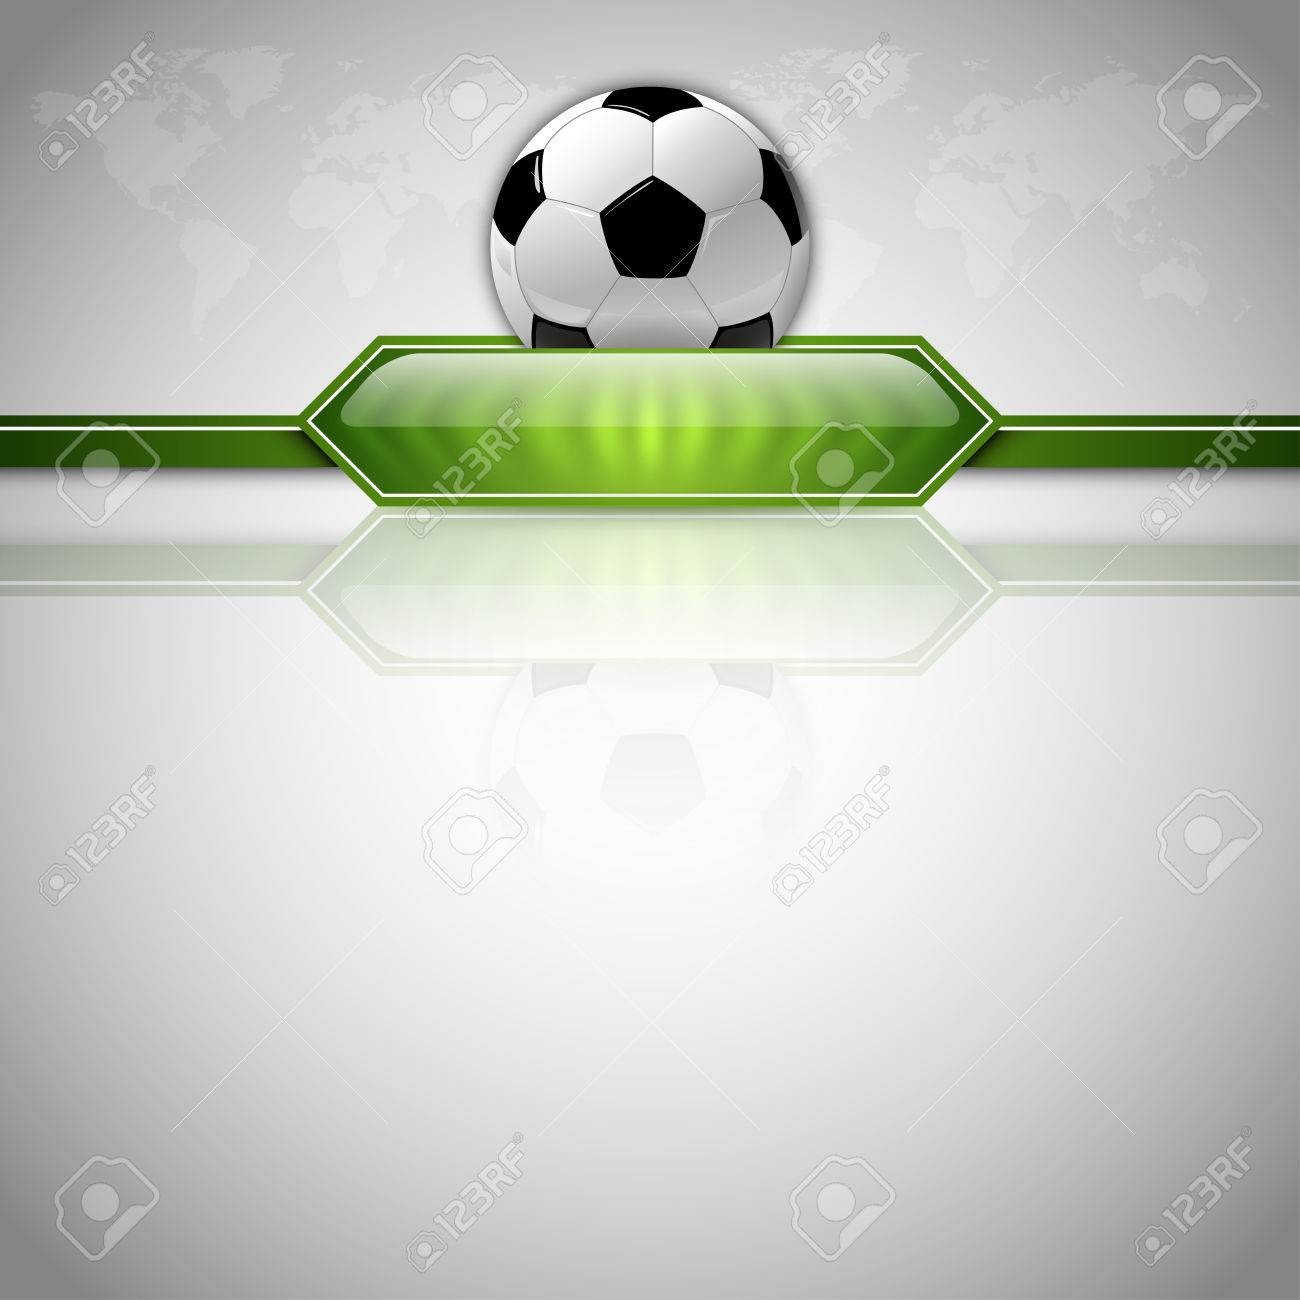 674f7a20f Soccer symbol. Football with green button for score information. Gray  background with world symbol